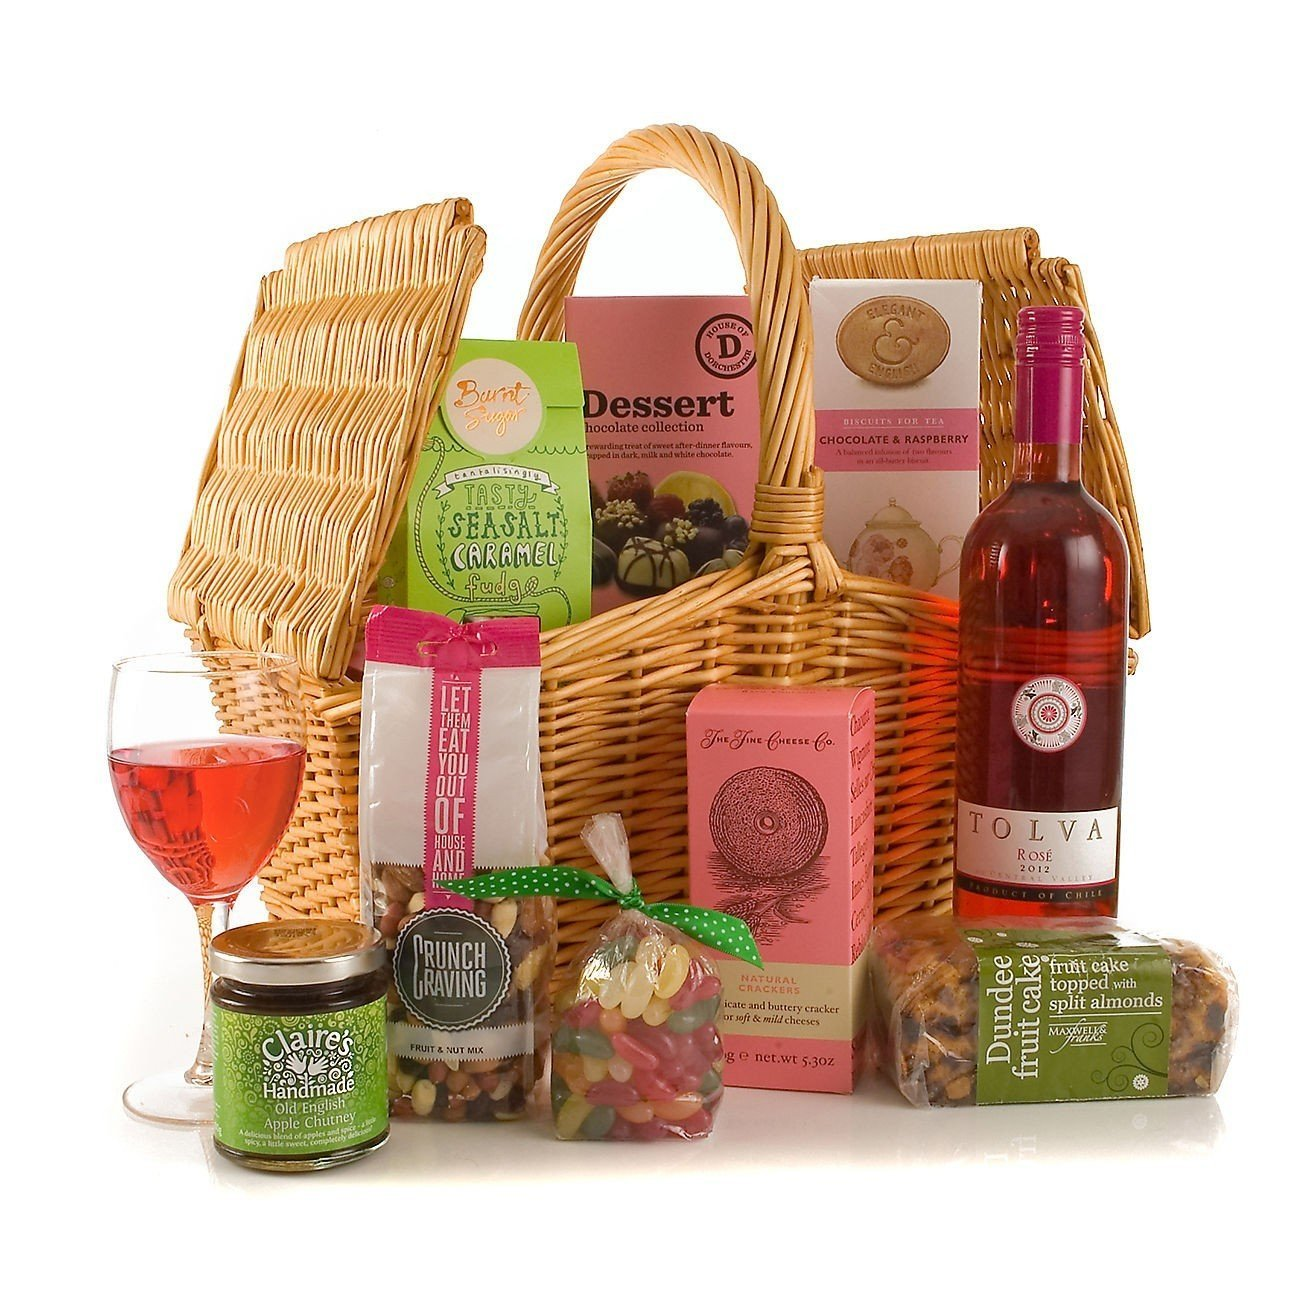 High quality hampers make a picnic special